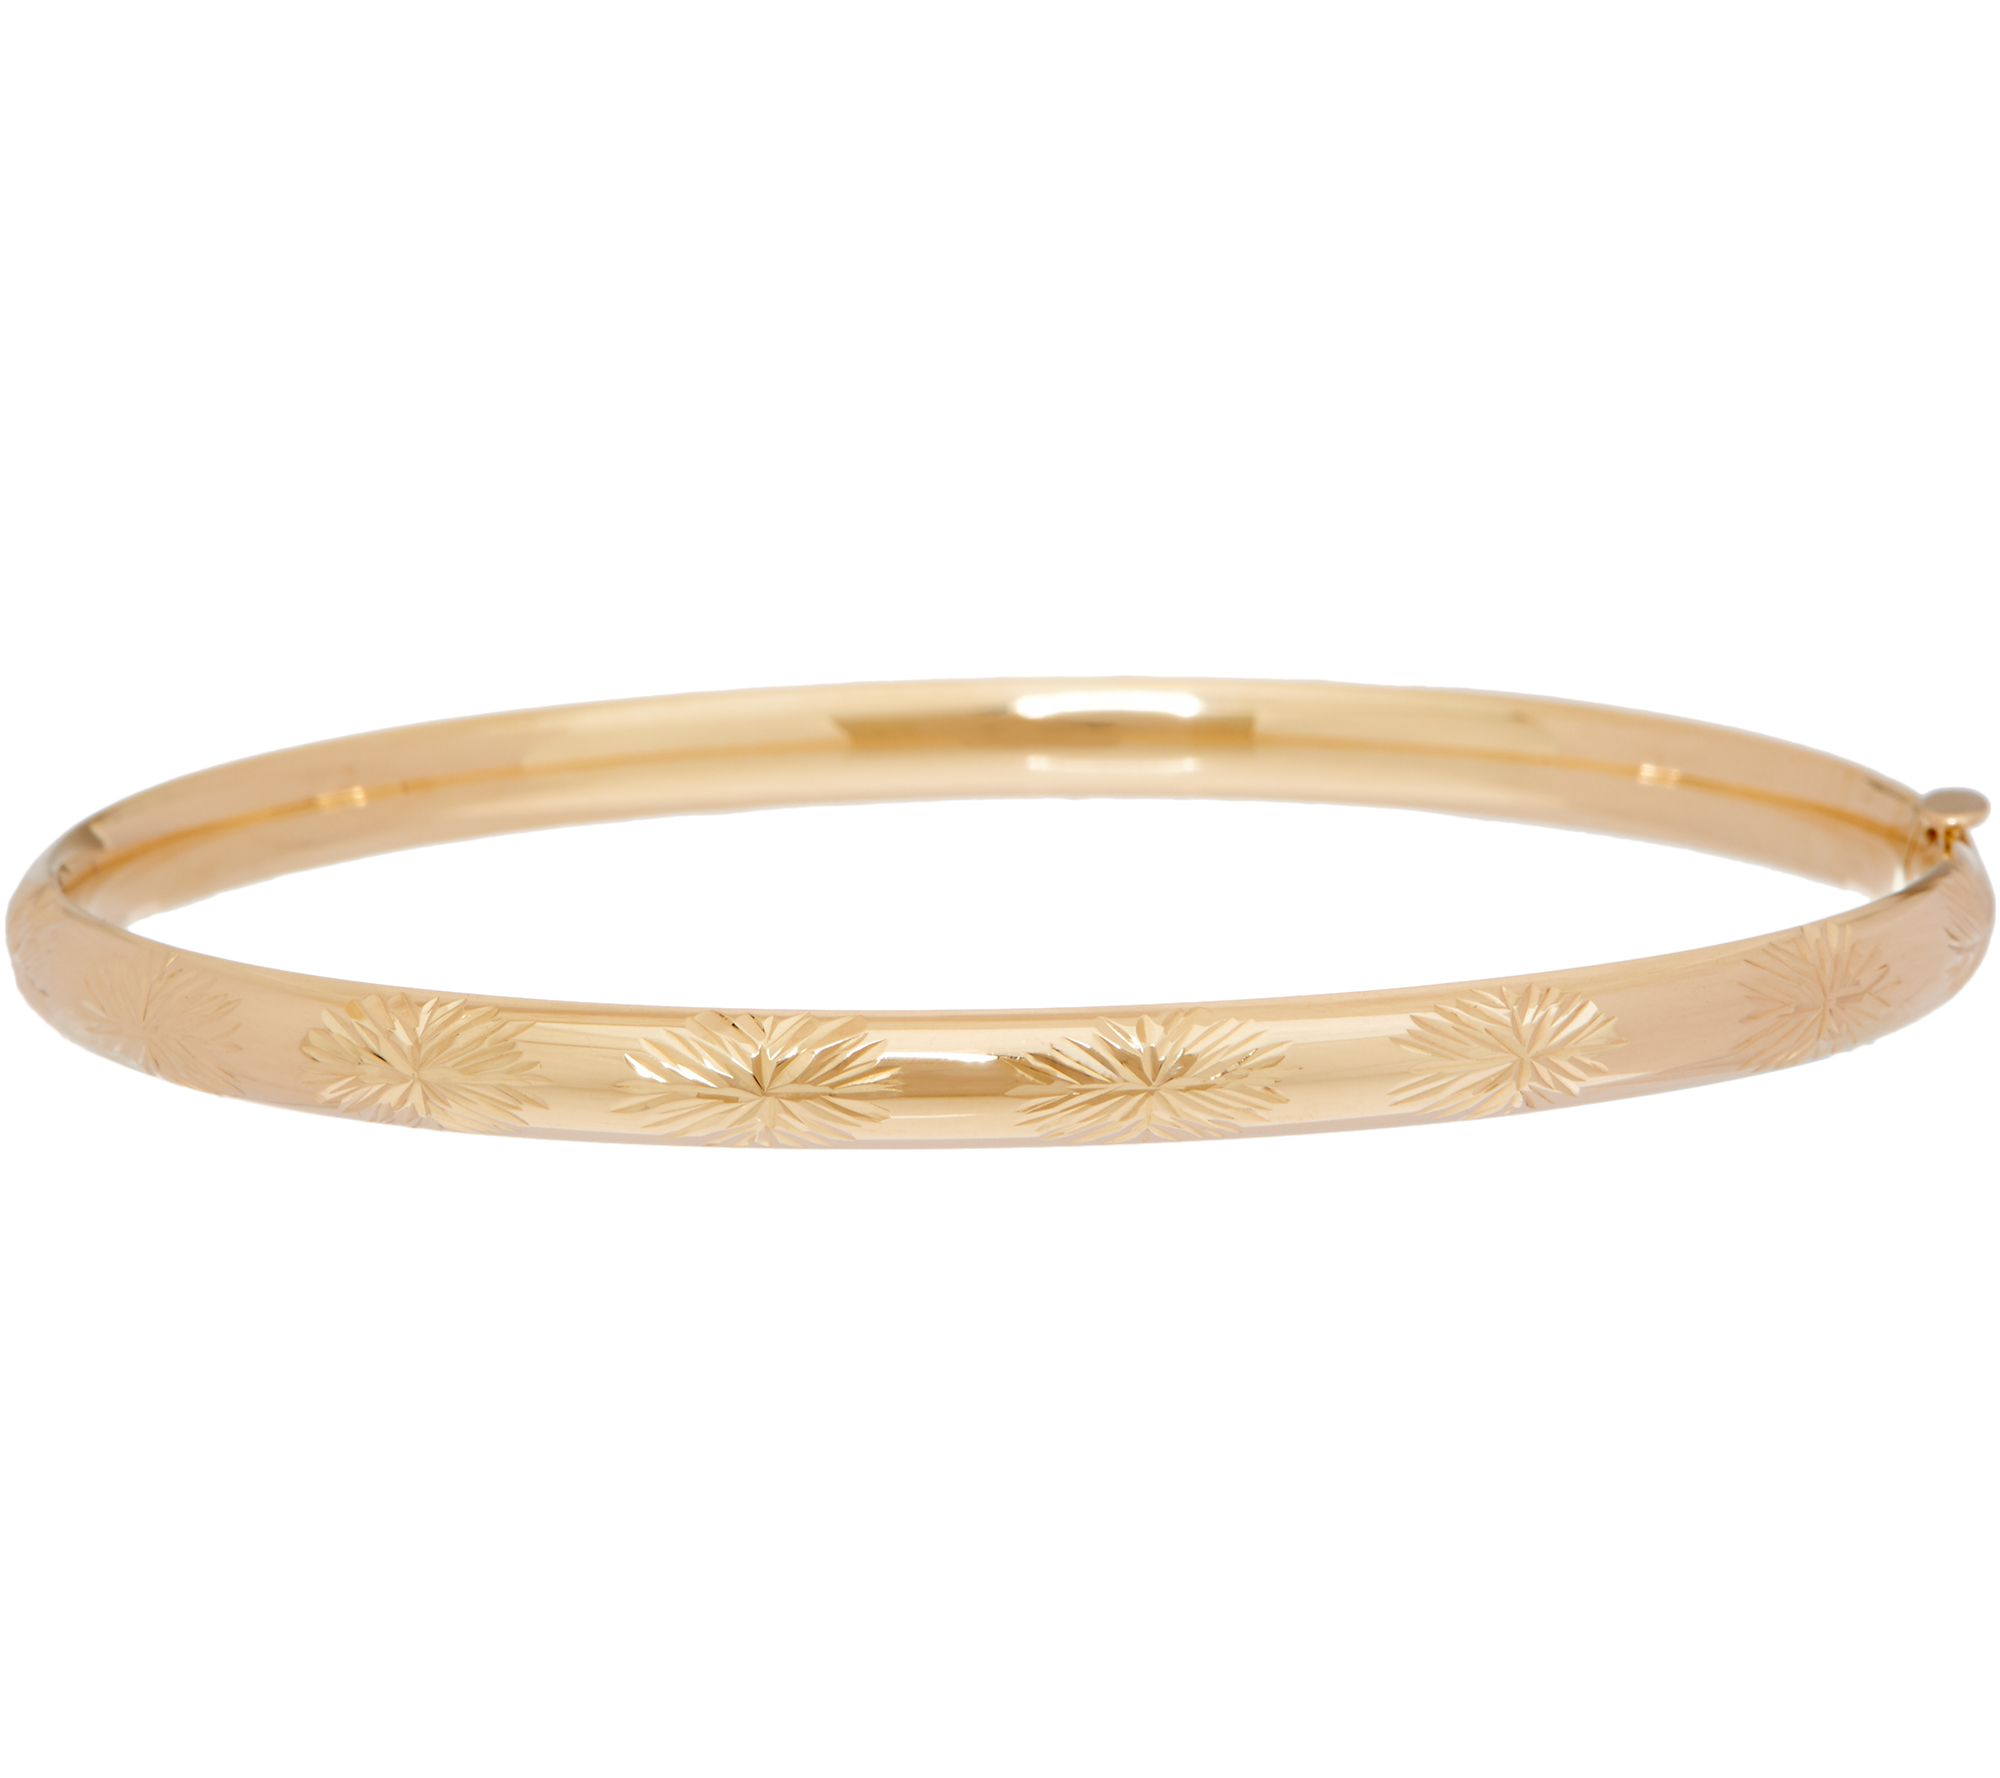 bangle bracelets usd gold karat product bangles kada detail water jewellery